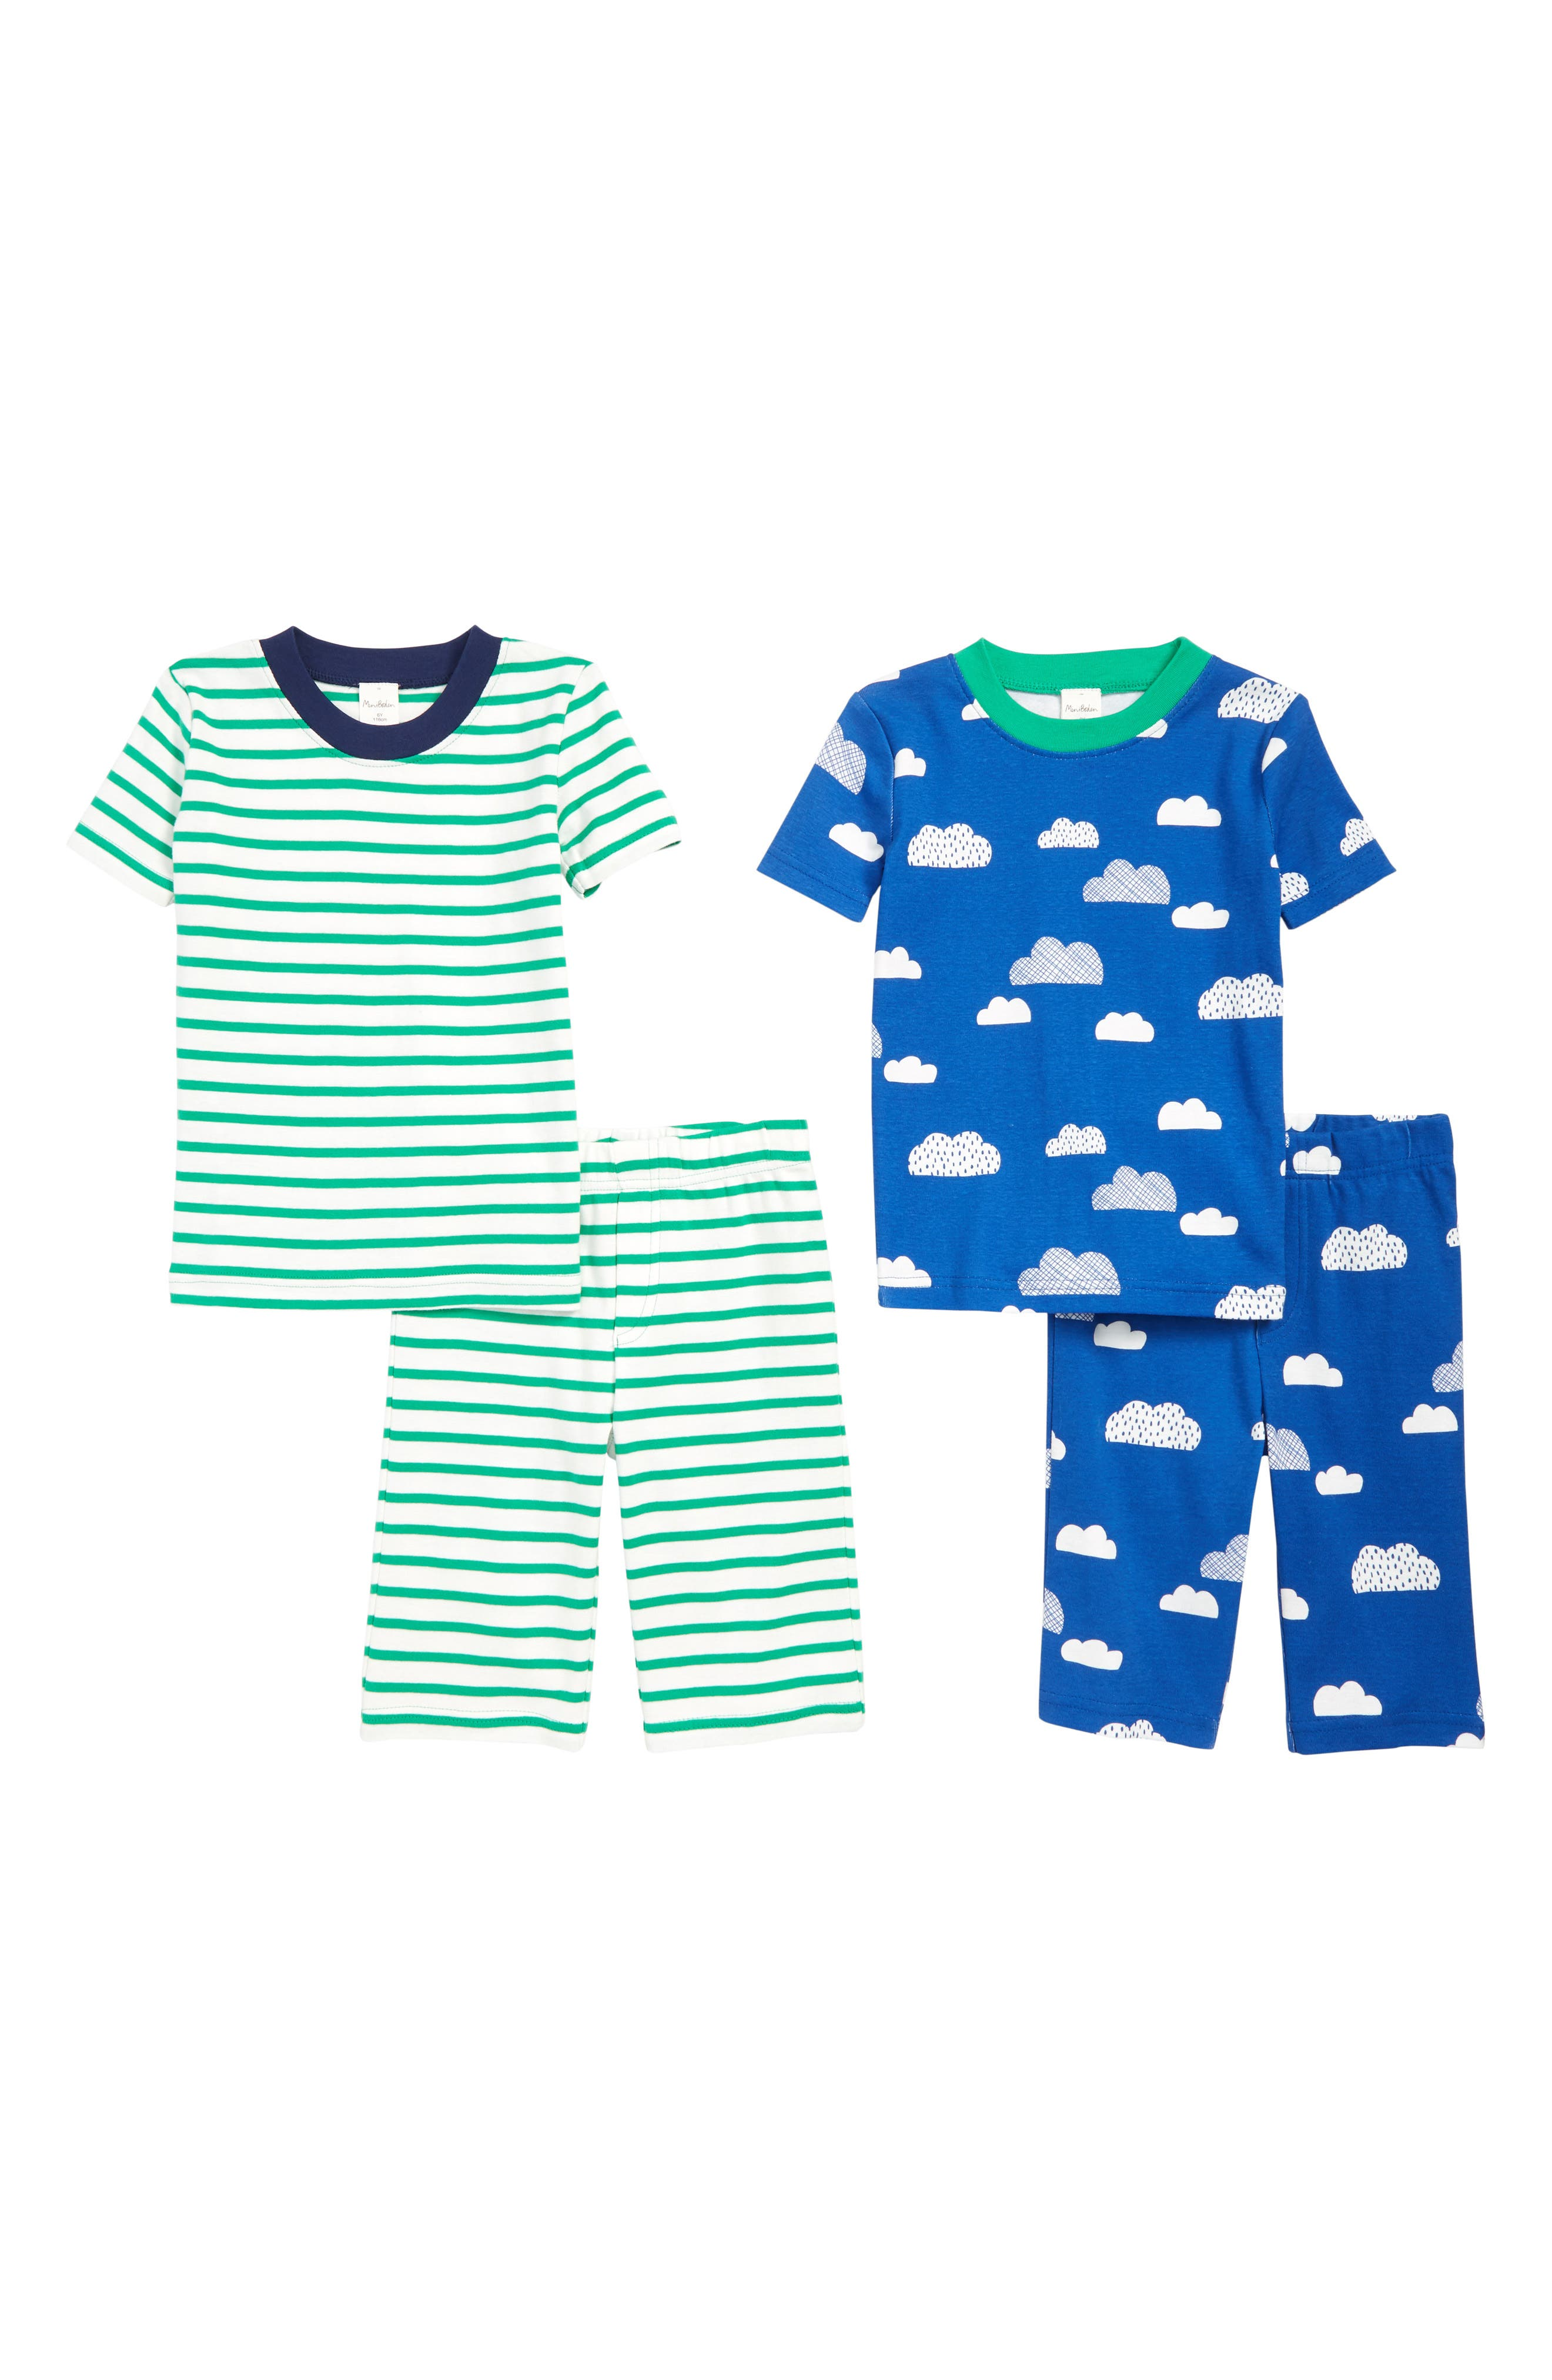 MINI BODEN 2-Pack Fitted Two-Piece Short Pajamas, Main, color, BLU DUKE BLUE CLOUDASTRO GREEN